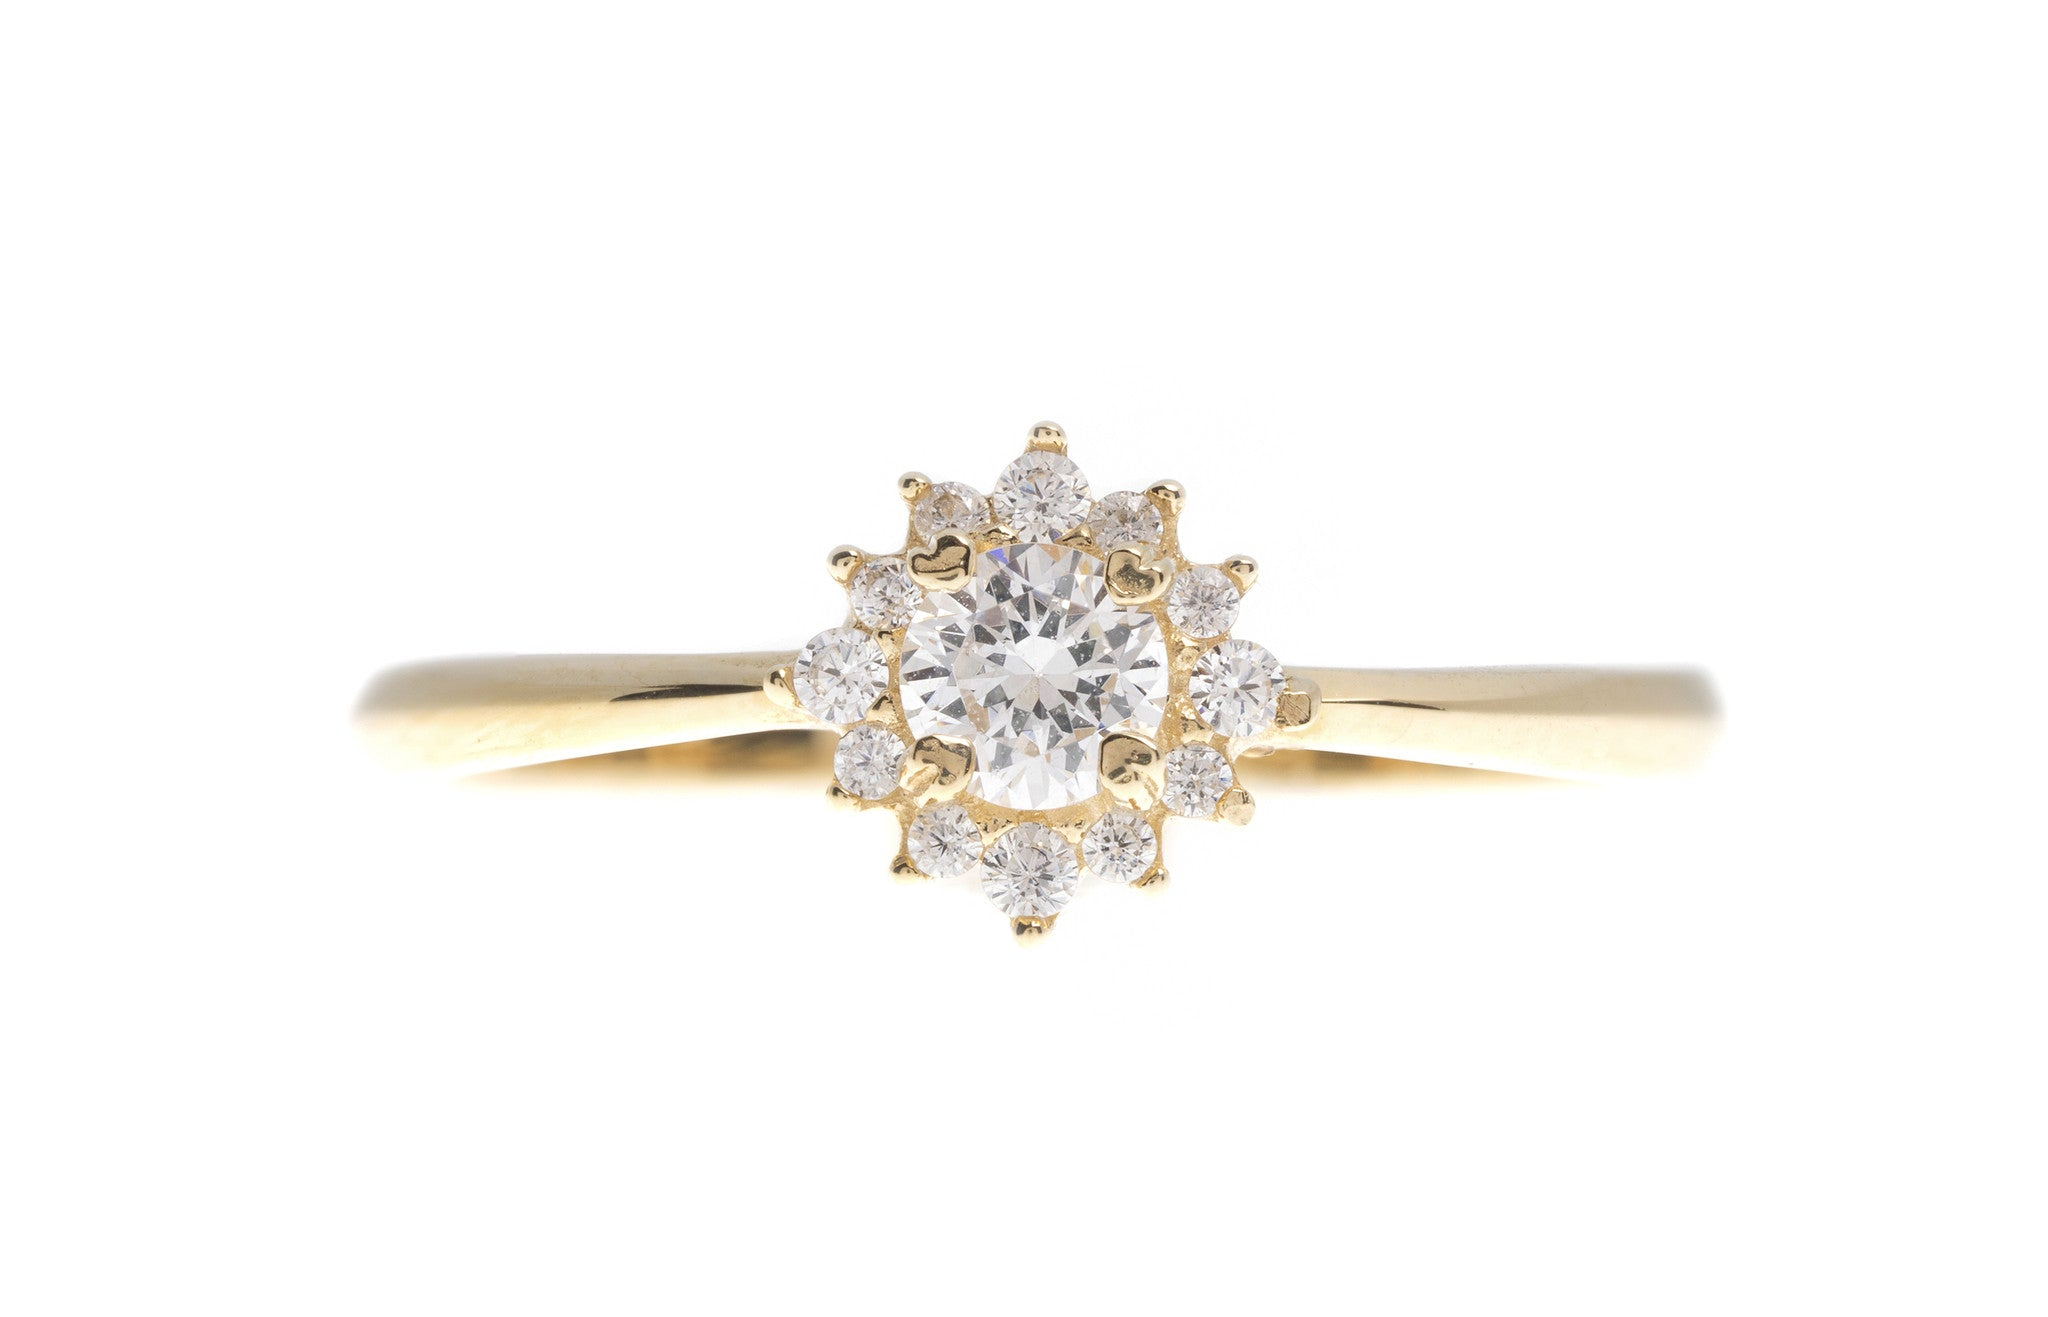 18ct White / Yellow Gold Cubic Zirconia Dress Ring, Minar Jewellers - 2